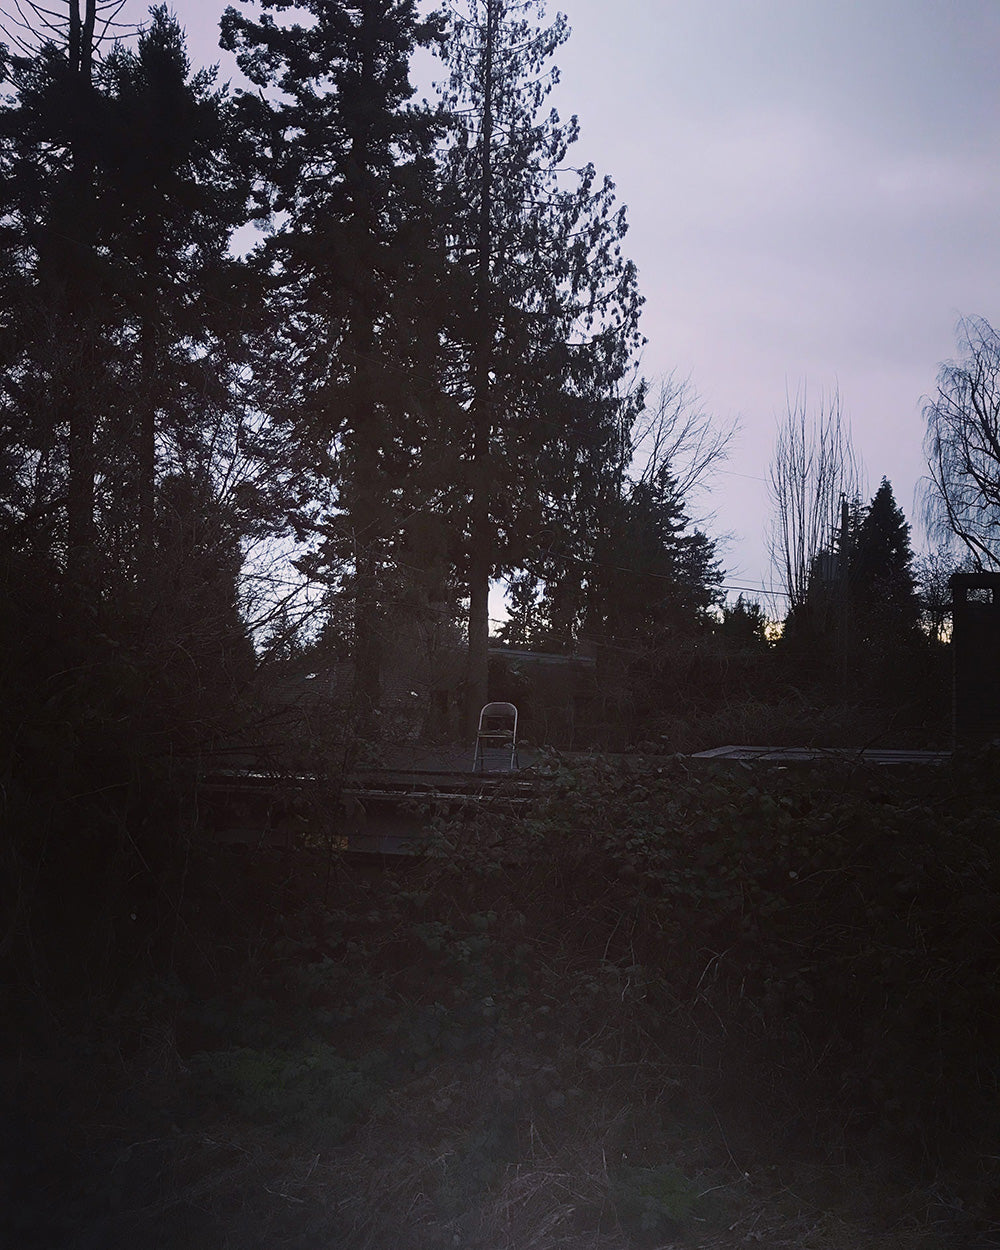 SPITGAN WEBZINE #3 Photo 13. Photo from the Arbutus Street bike path of an abandoned chair on a old wooden garage roof twilight Vancouver, BC. Random weirdness